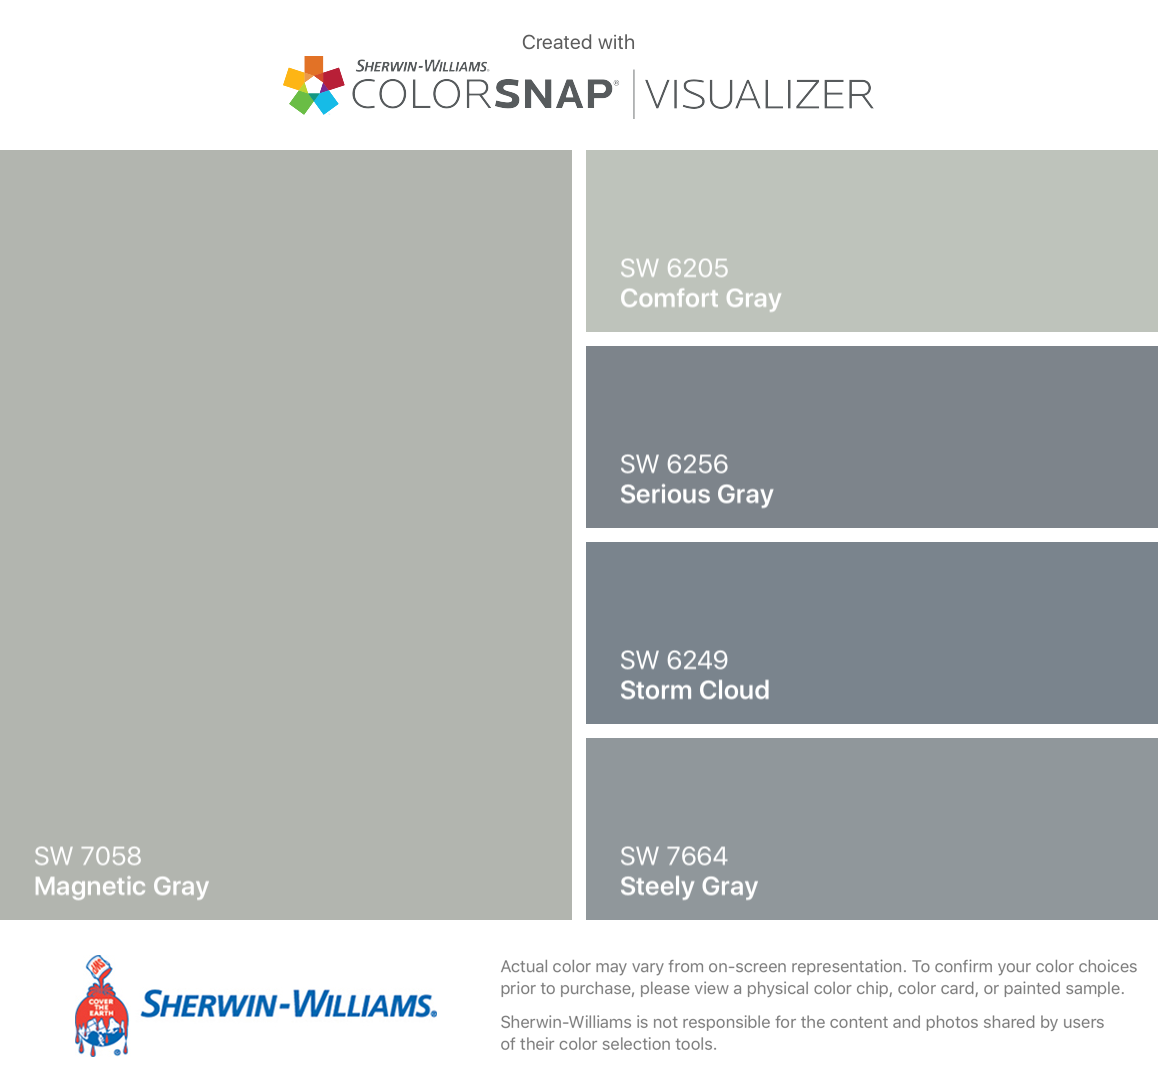 Sherwin williams paint colors sherwin williams 6249 storm cloud - I Found These Colors With Colorsnap Visualizer For Iphone By Sherwin Williams Magnetic Gray Sw Comfort Gray Sw Serious Gray Sw Storm Cloud Sw Steely